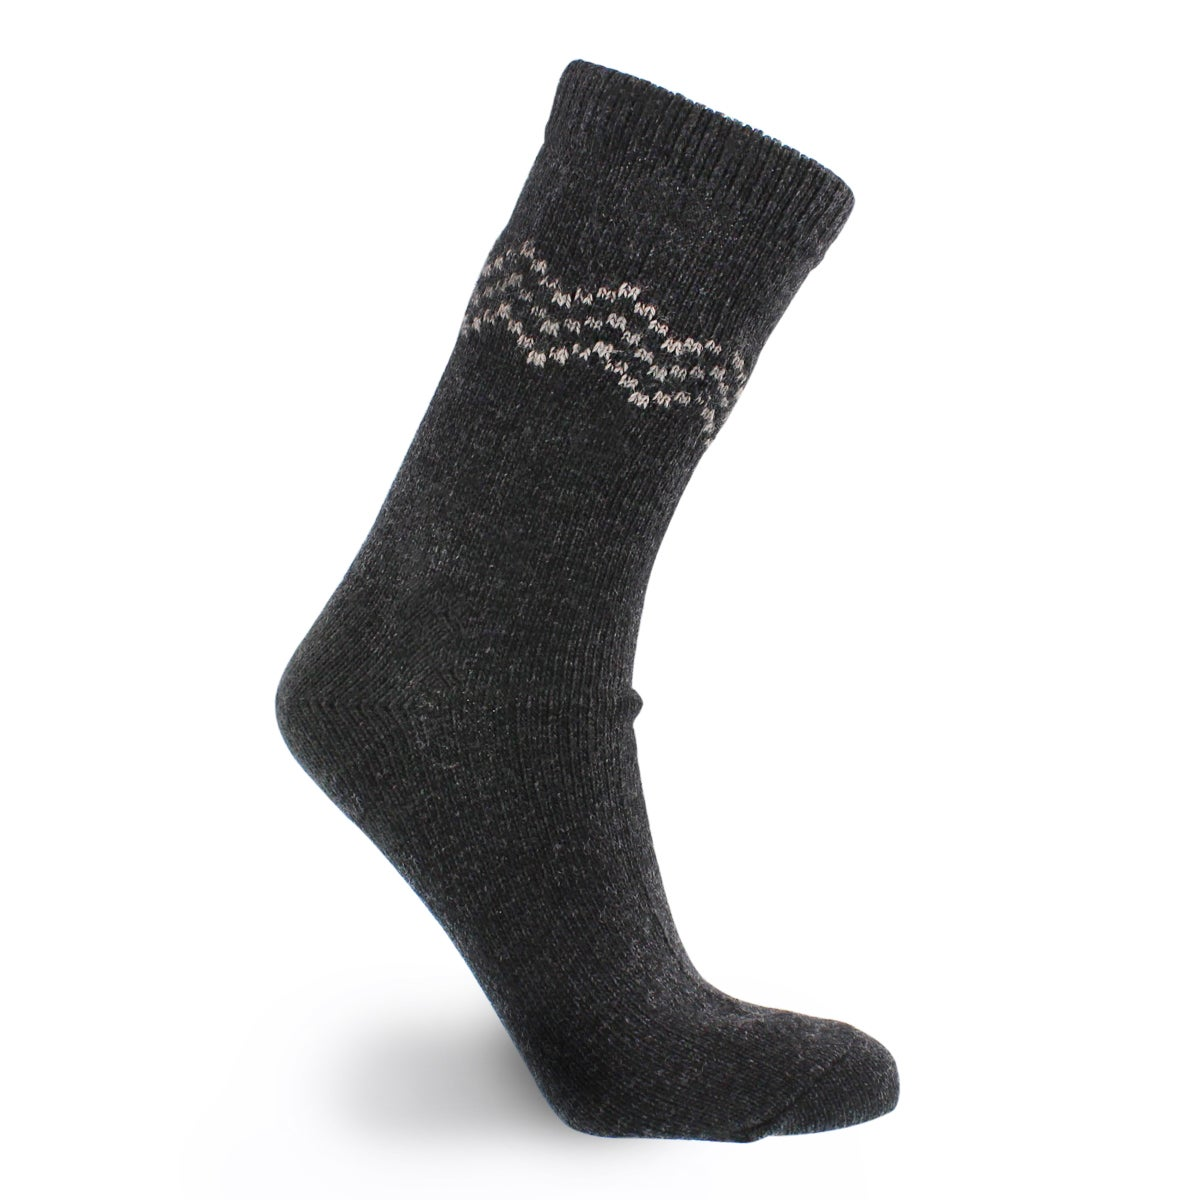 Lds 84N Chevron Crew black sock